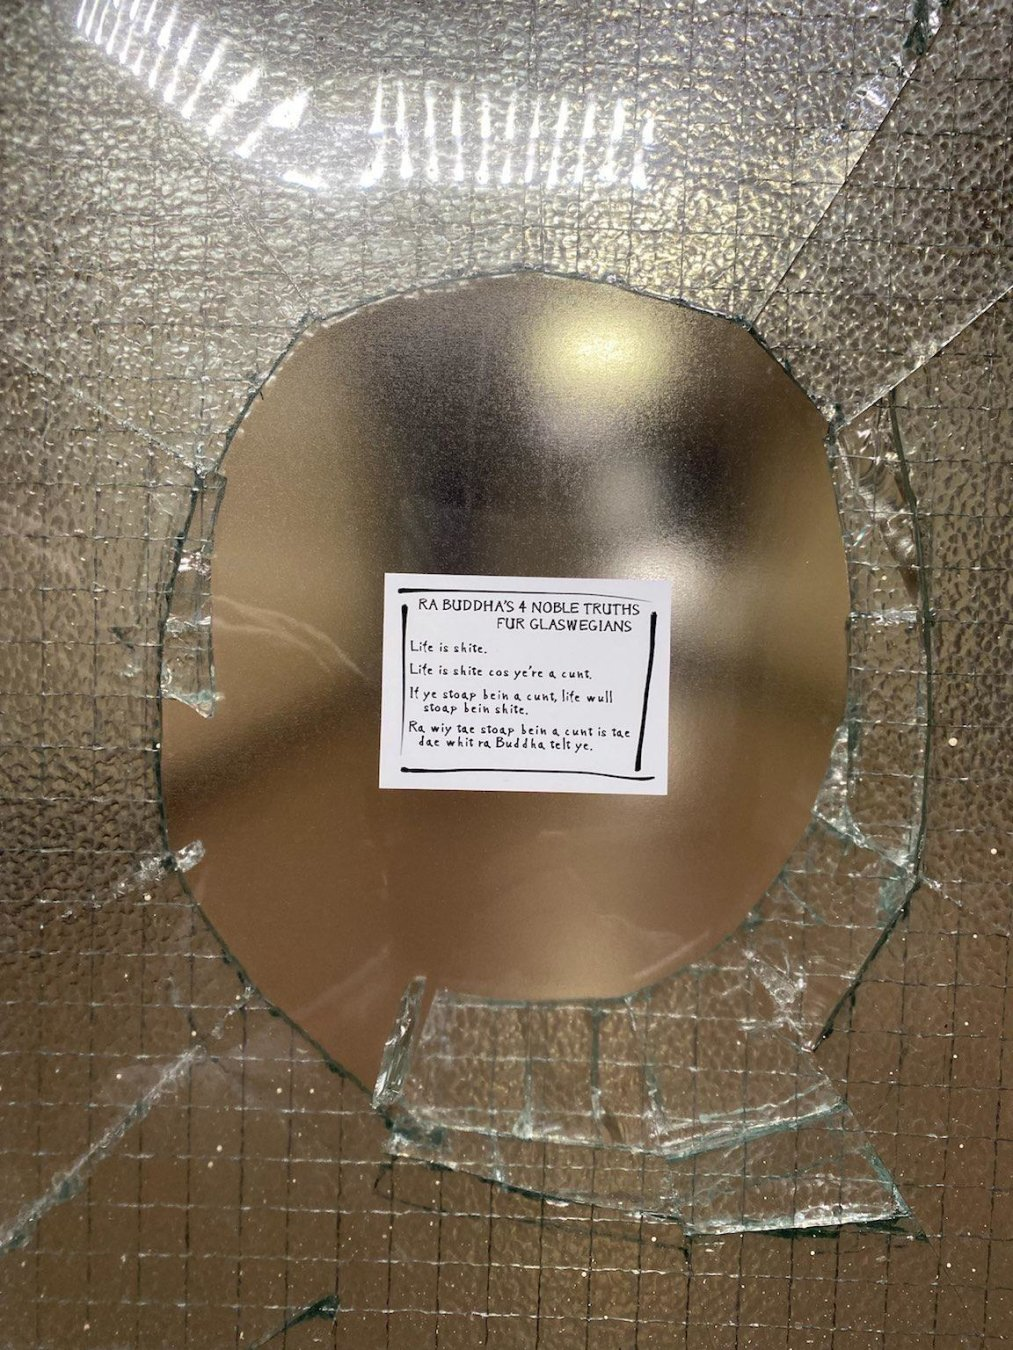 Broken glass panel in a block of flats, covered with a sticker with the Buddha's 4 Noble Truths in Glaswegian Scots